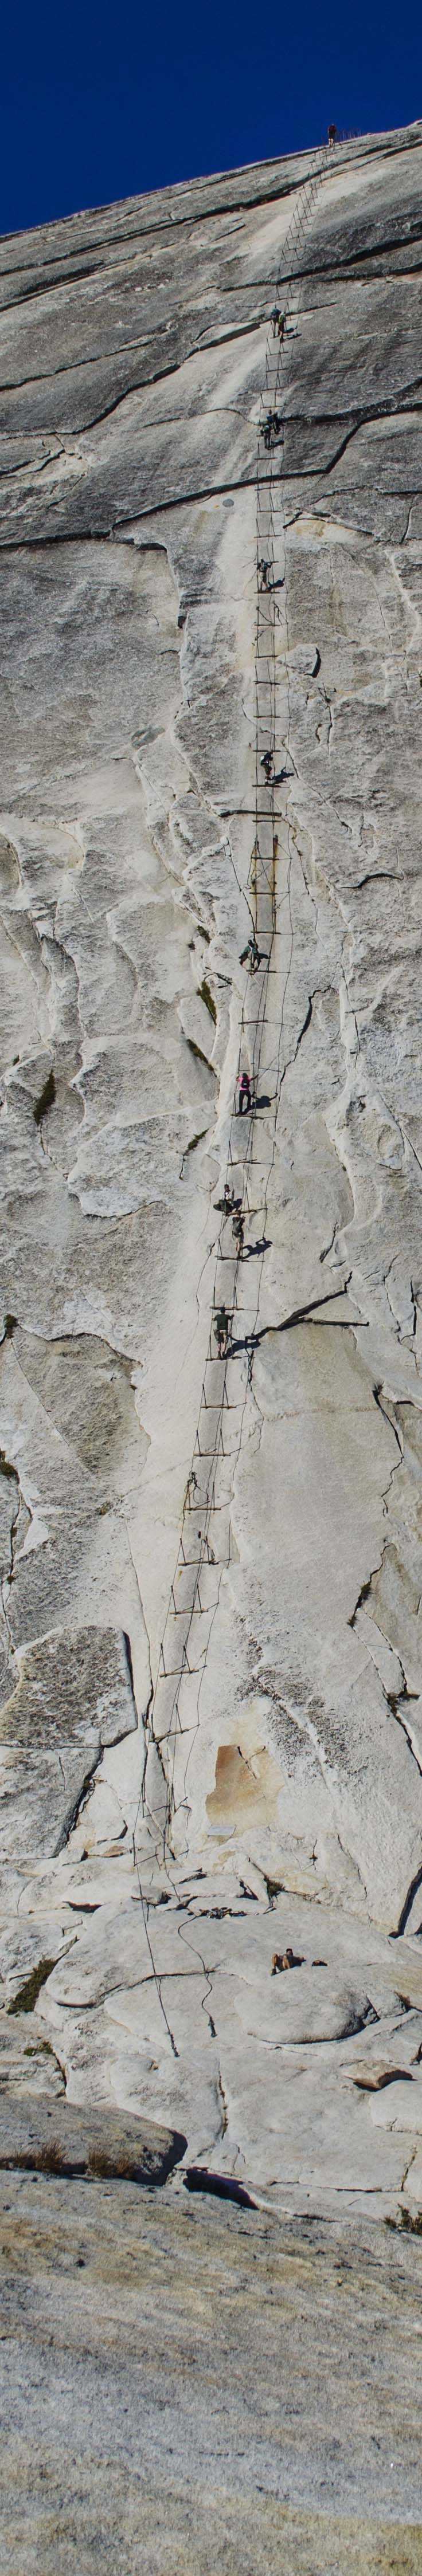 Hikers on the Half Dome cables.